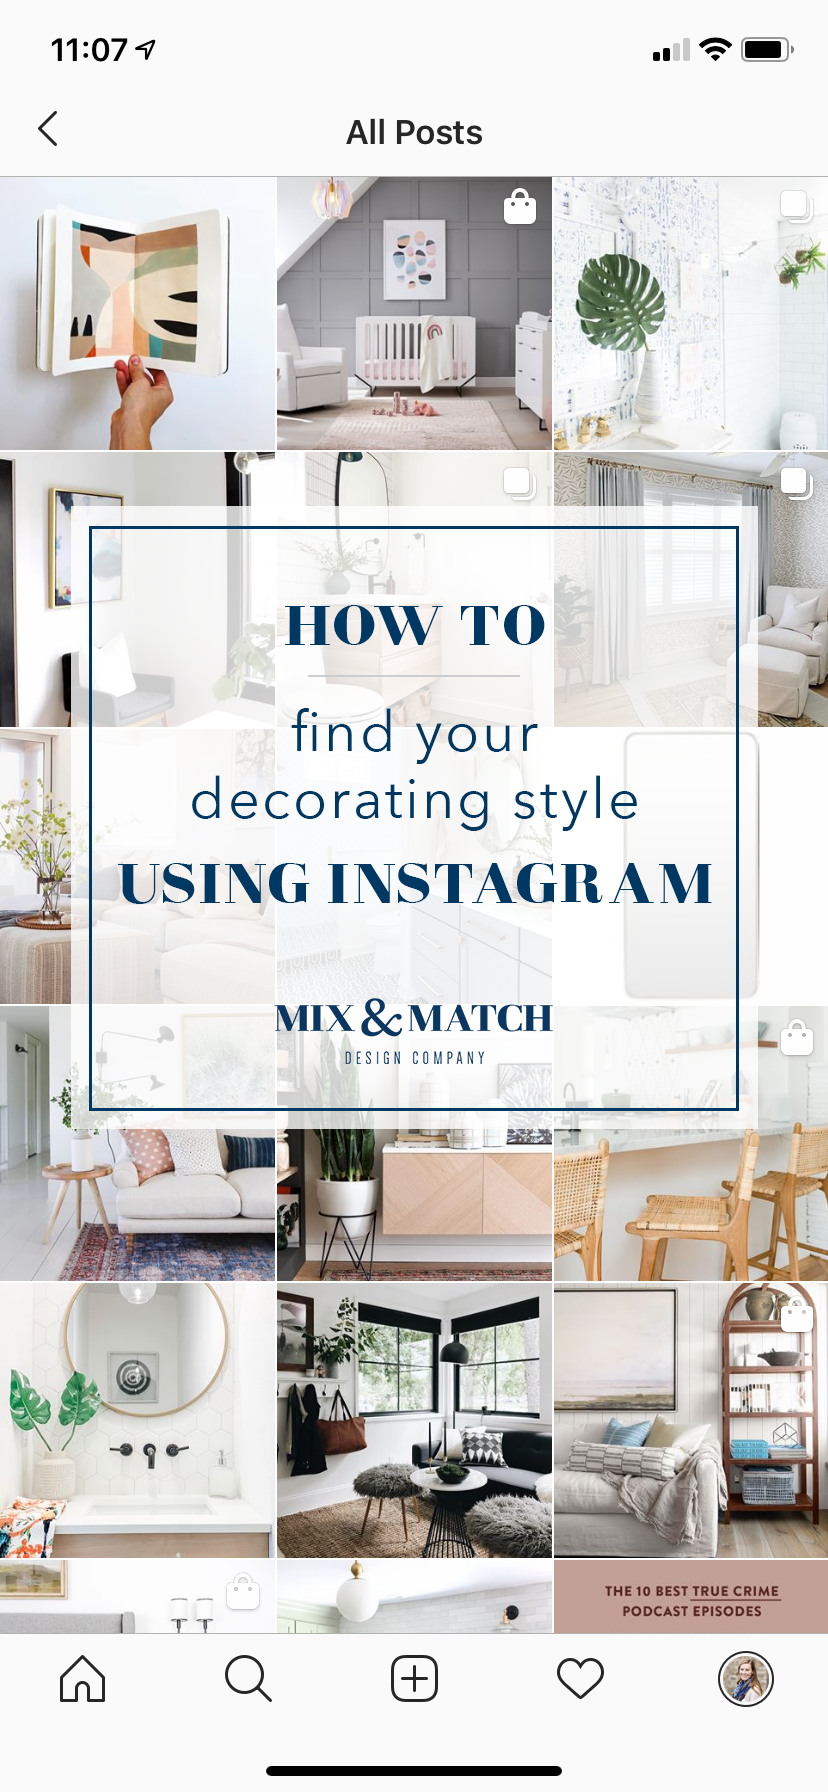 How To Find Your Decorating Style Using Instagram